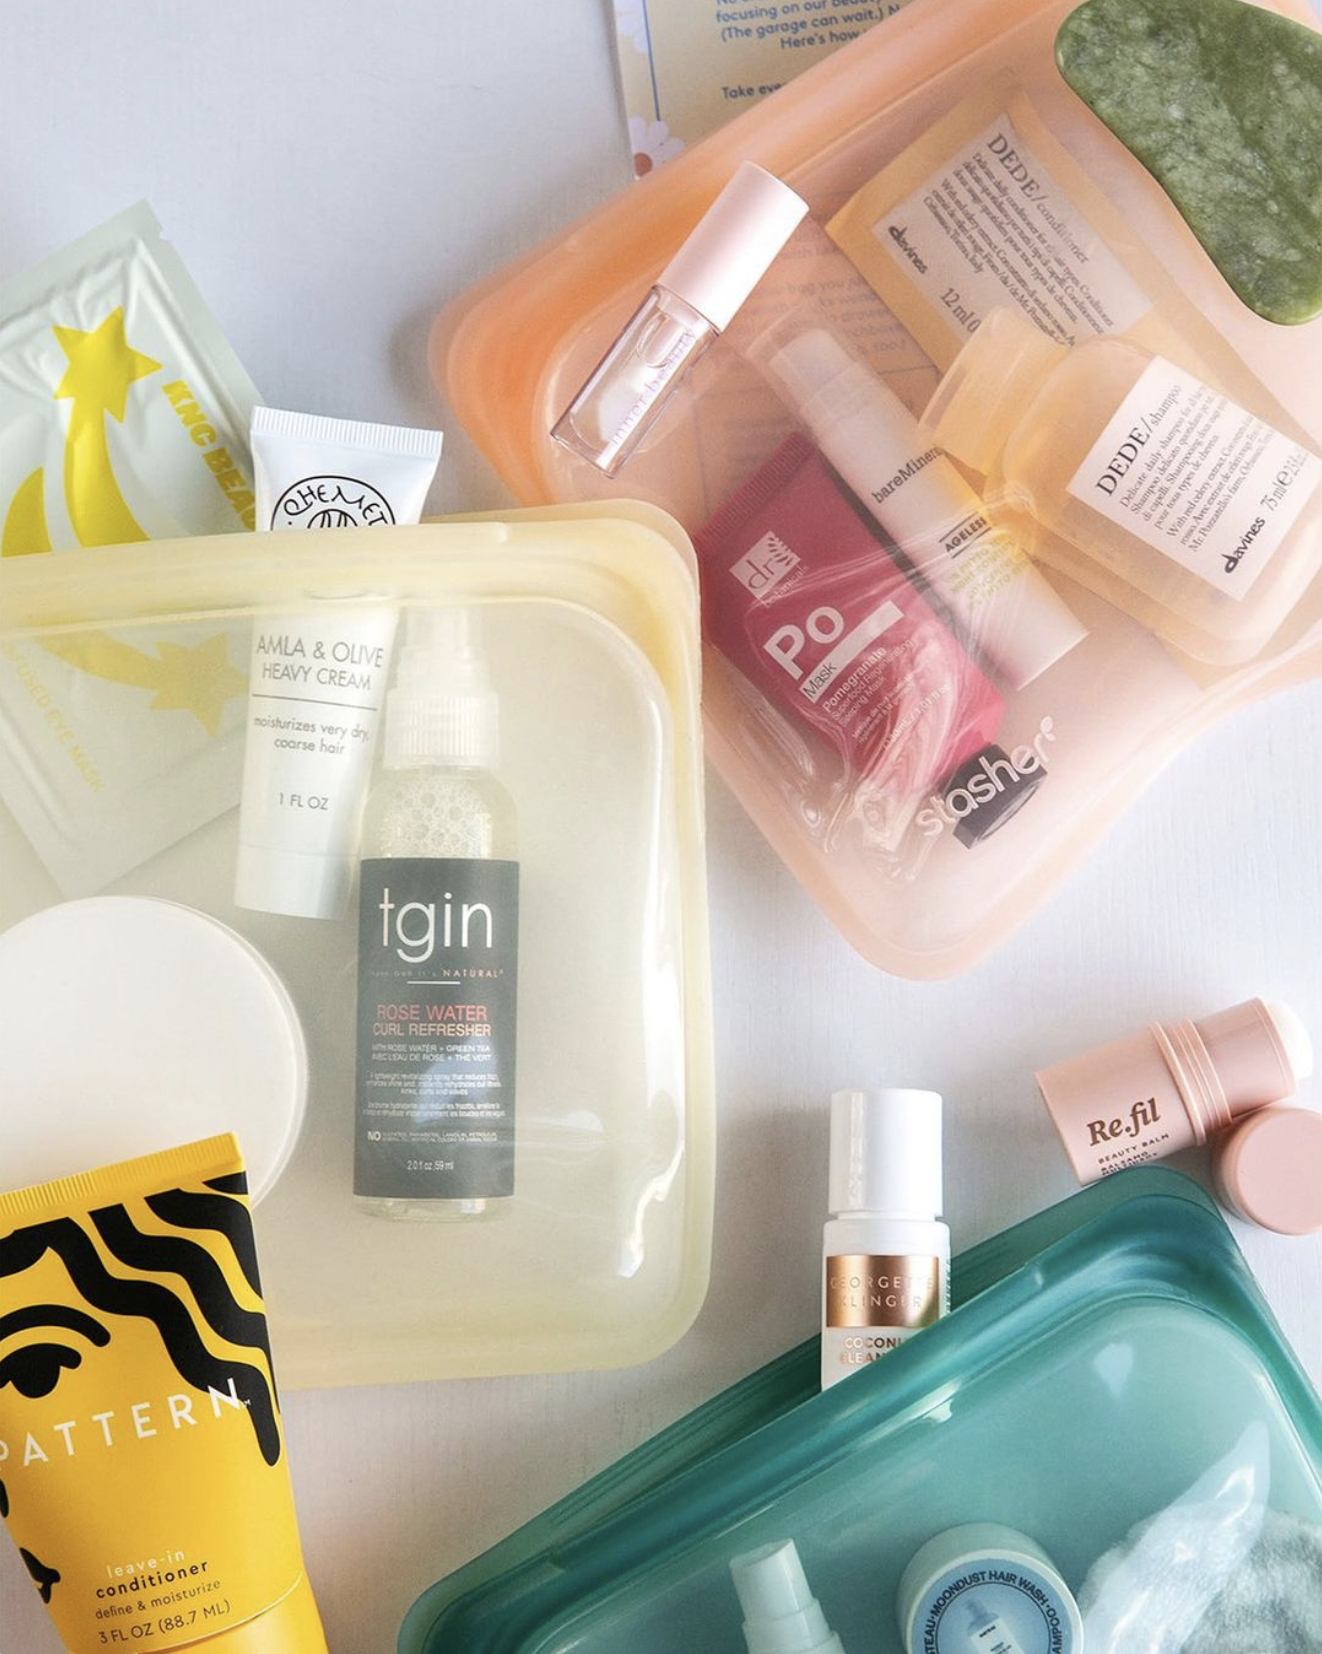 Birchbox April 2021 Sample Choice & Curated Box Selection Time